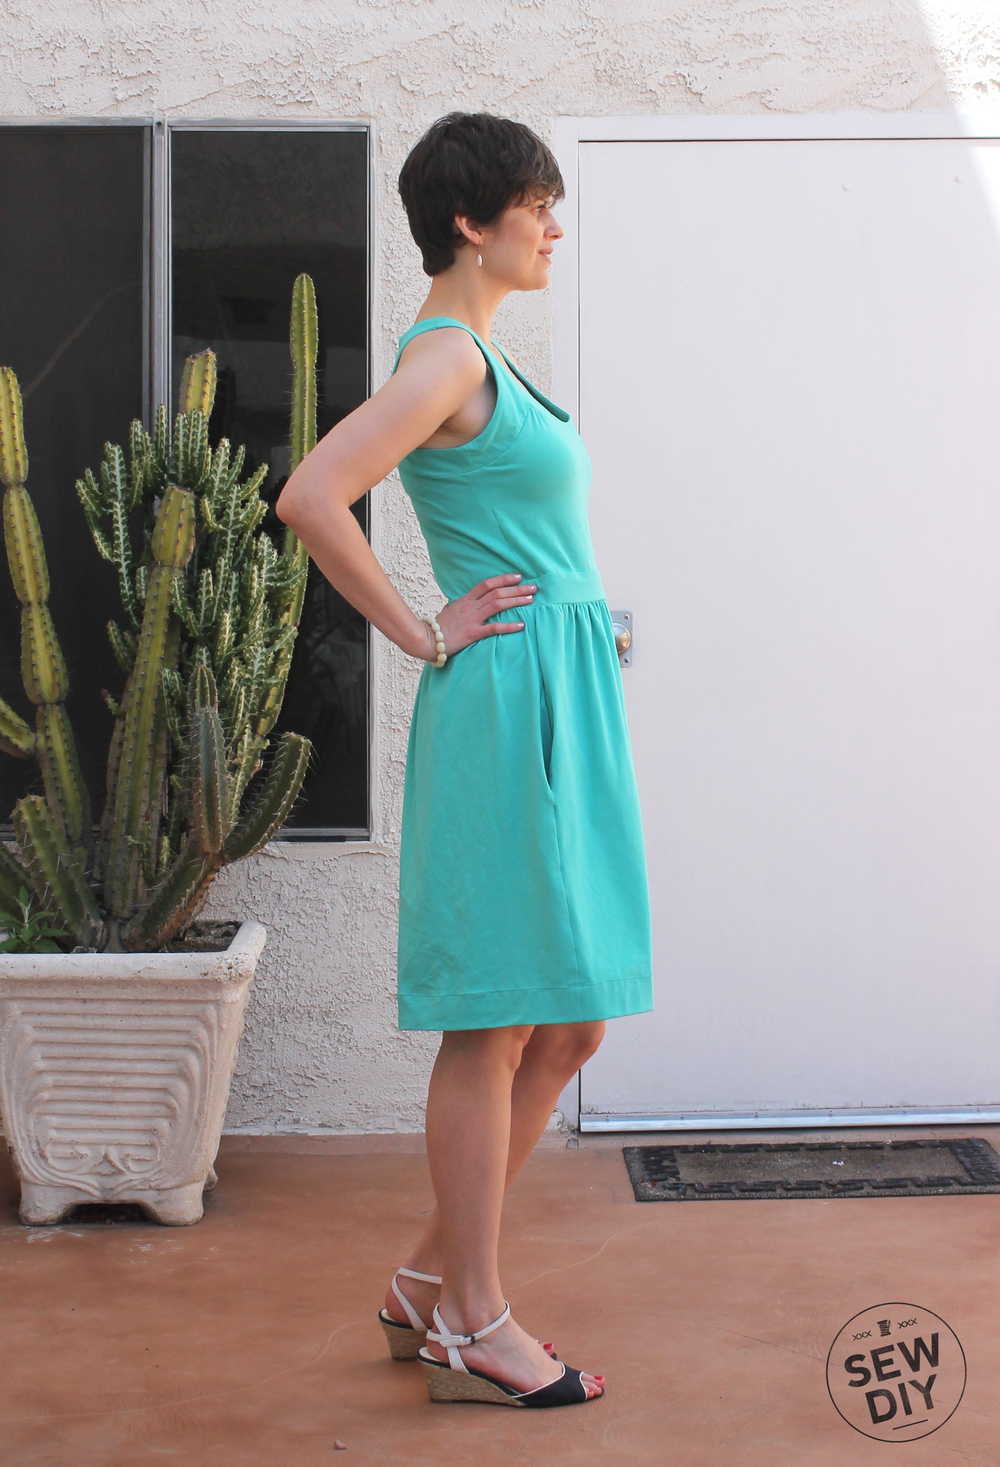 Teal Racerback Knit Dress Simplicity 2443 – Sew DIY